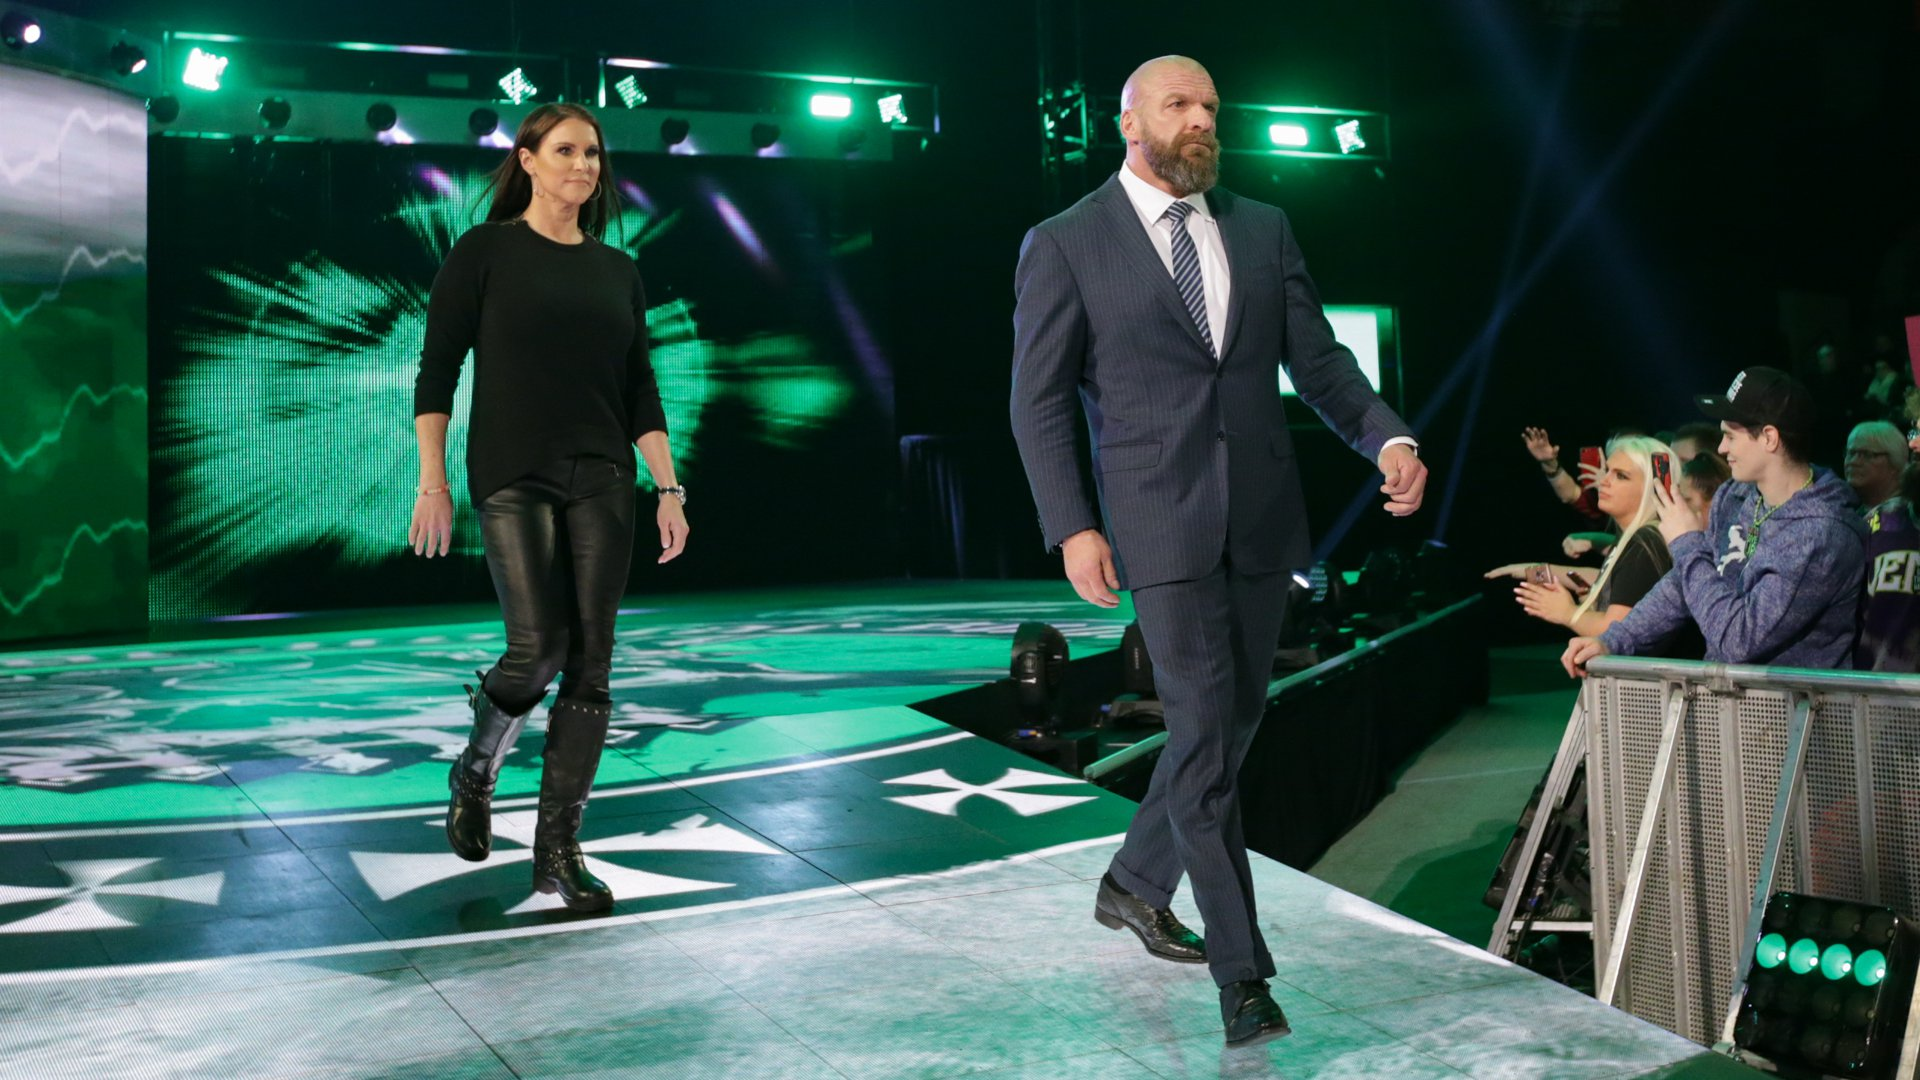 Triple H and Stephanie McMahon prepare to confront Lynch.